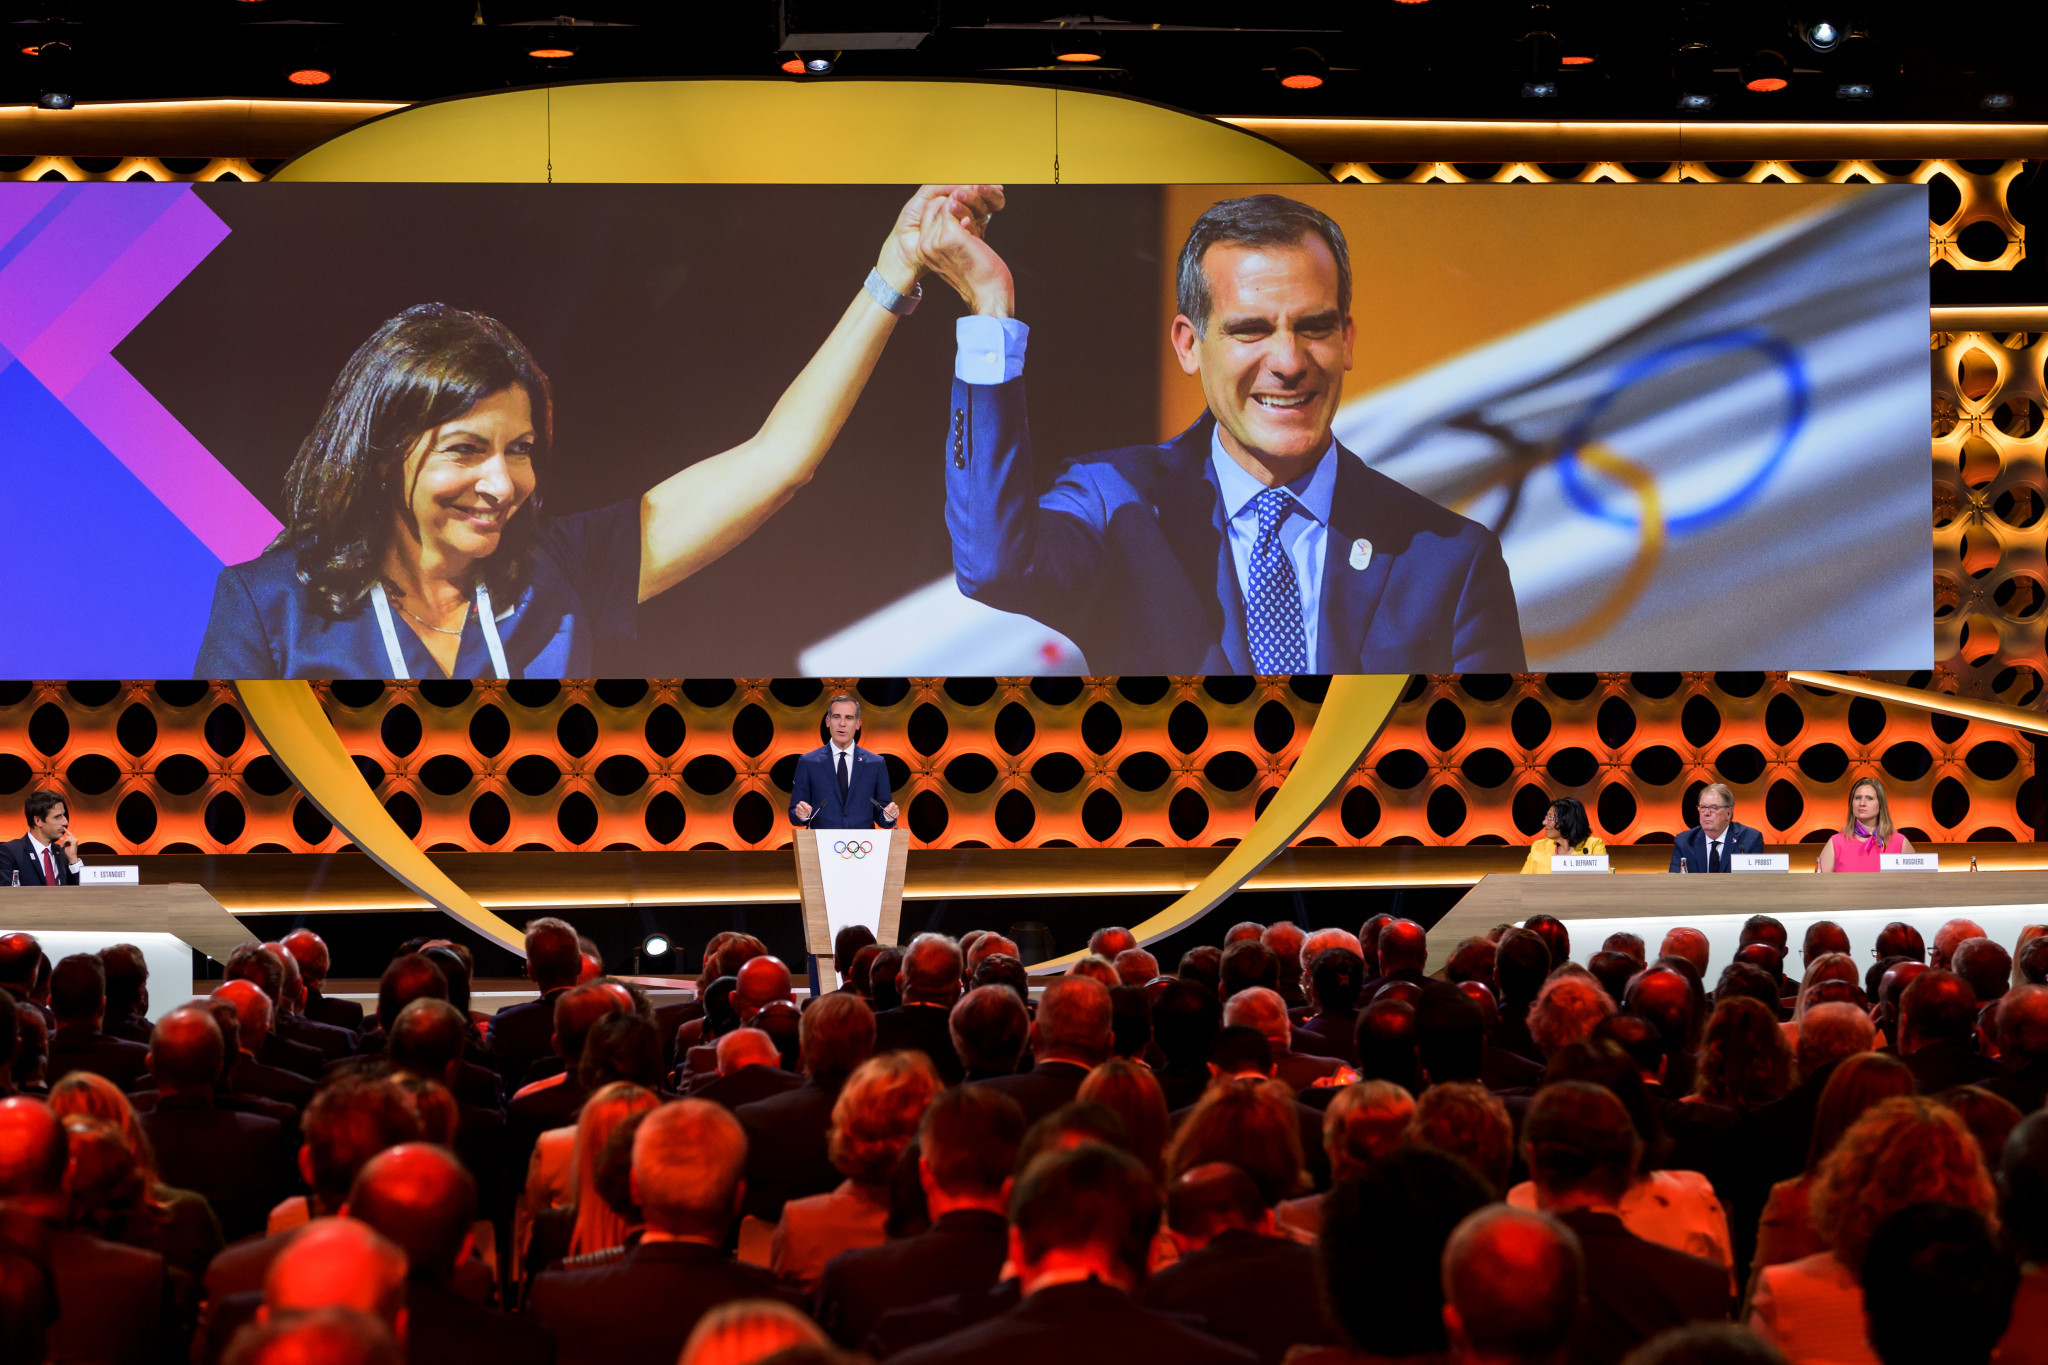 Eric Garcetti, speaking, made the Olympics sound like something a city should invest in ©Getty Images